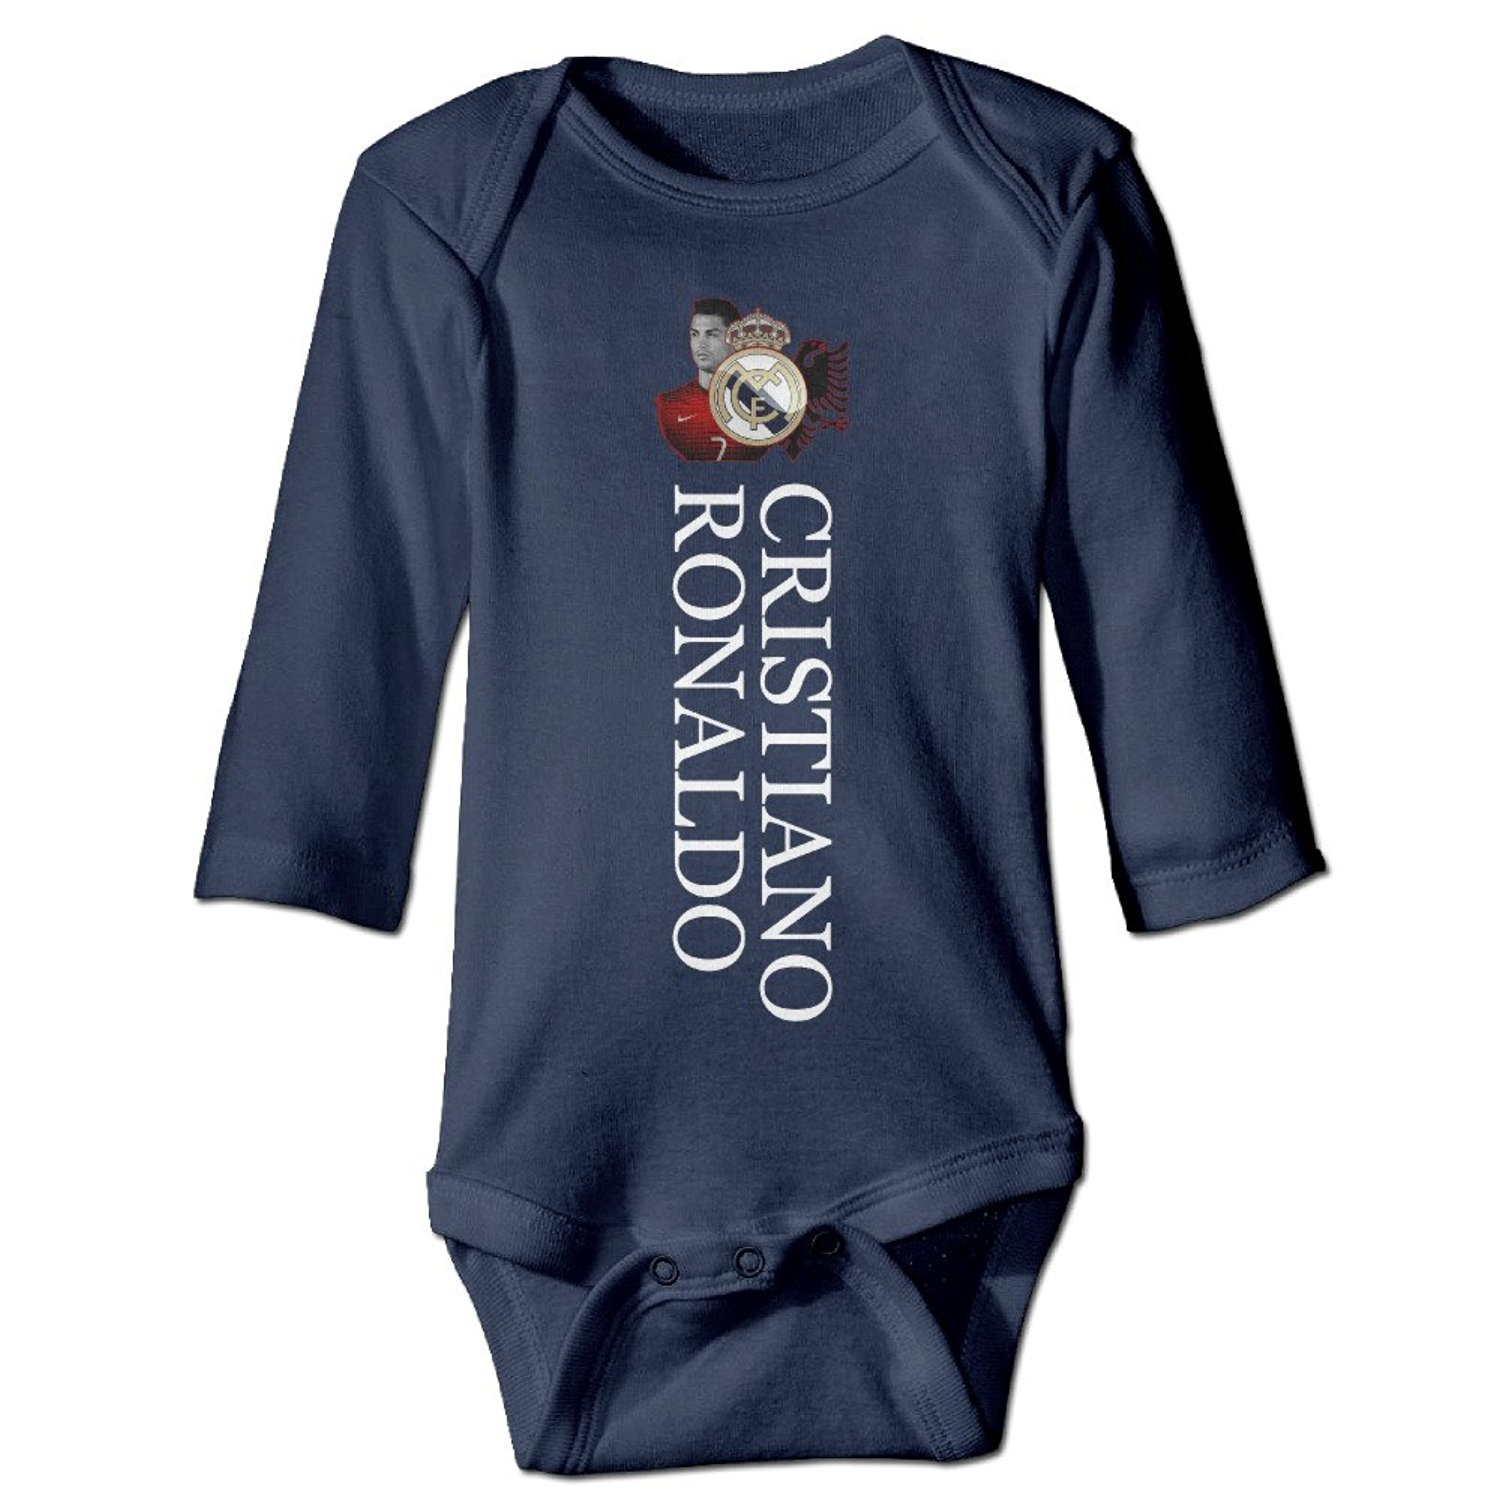 d51bc4857 Get Quotations · PGiG Baby s Real Madrid CF Cristiano Ronaldo Hanging  Bodysuit Romper Playsuit Outfits Clothes Climbing Clothes Long